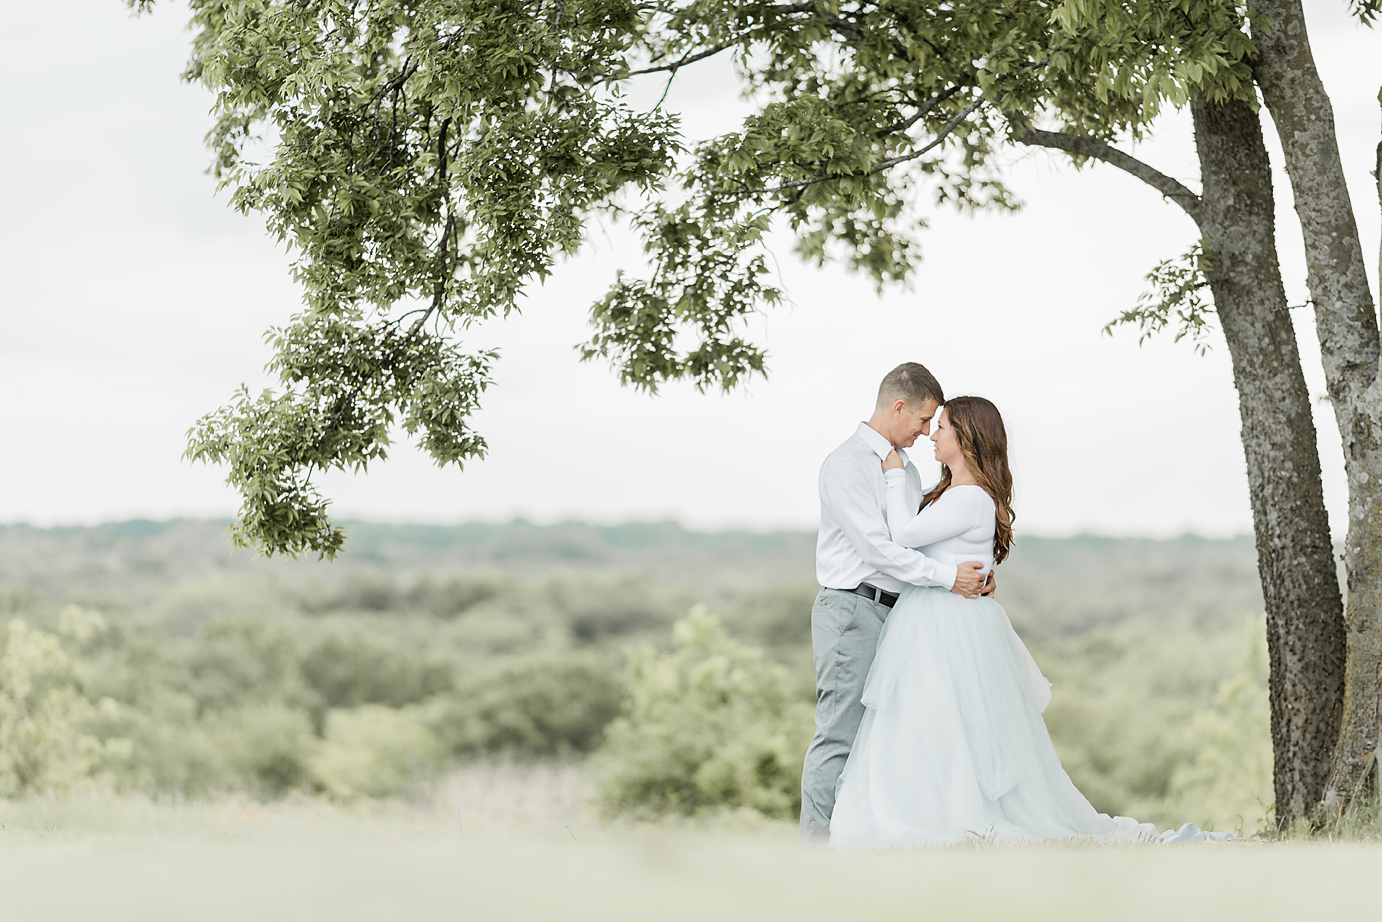 Dallas Wedding Photographer Flower Mound anniversary Photographer Kim Brett Texas Ranch Kate Marie Portraiture 13.png